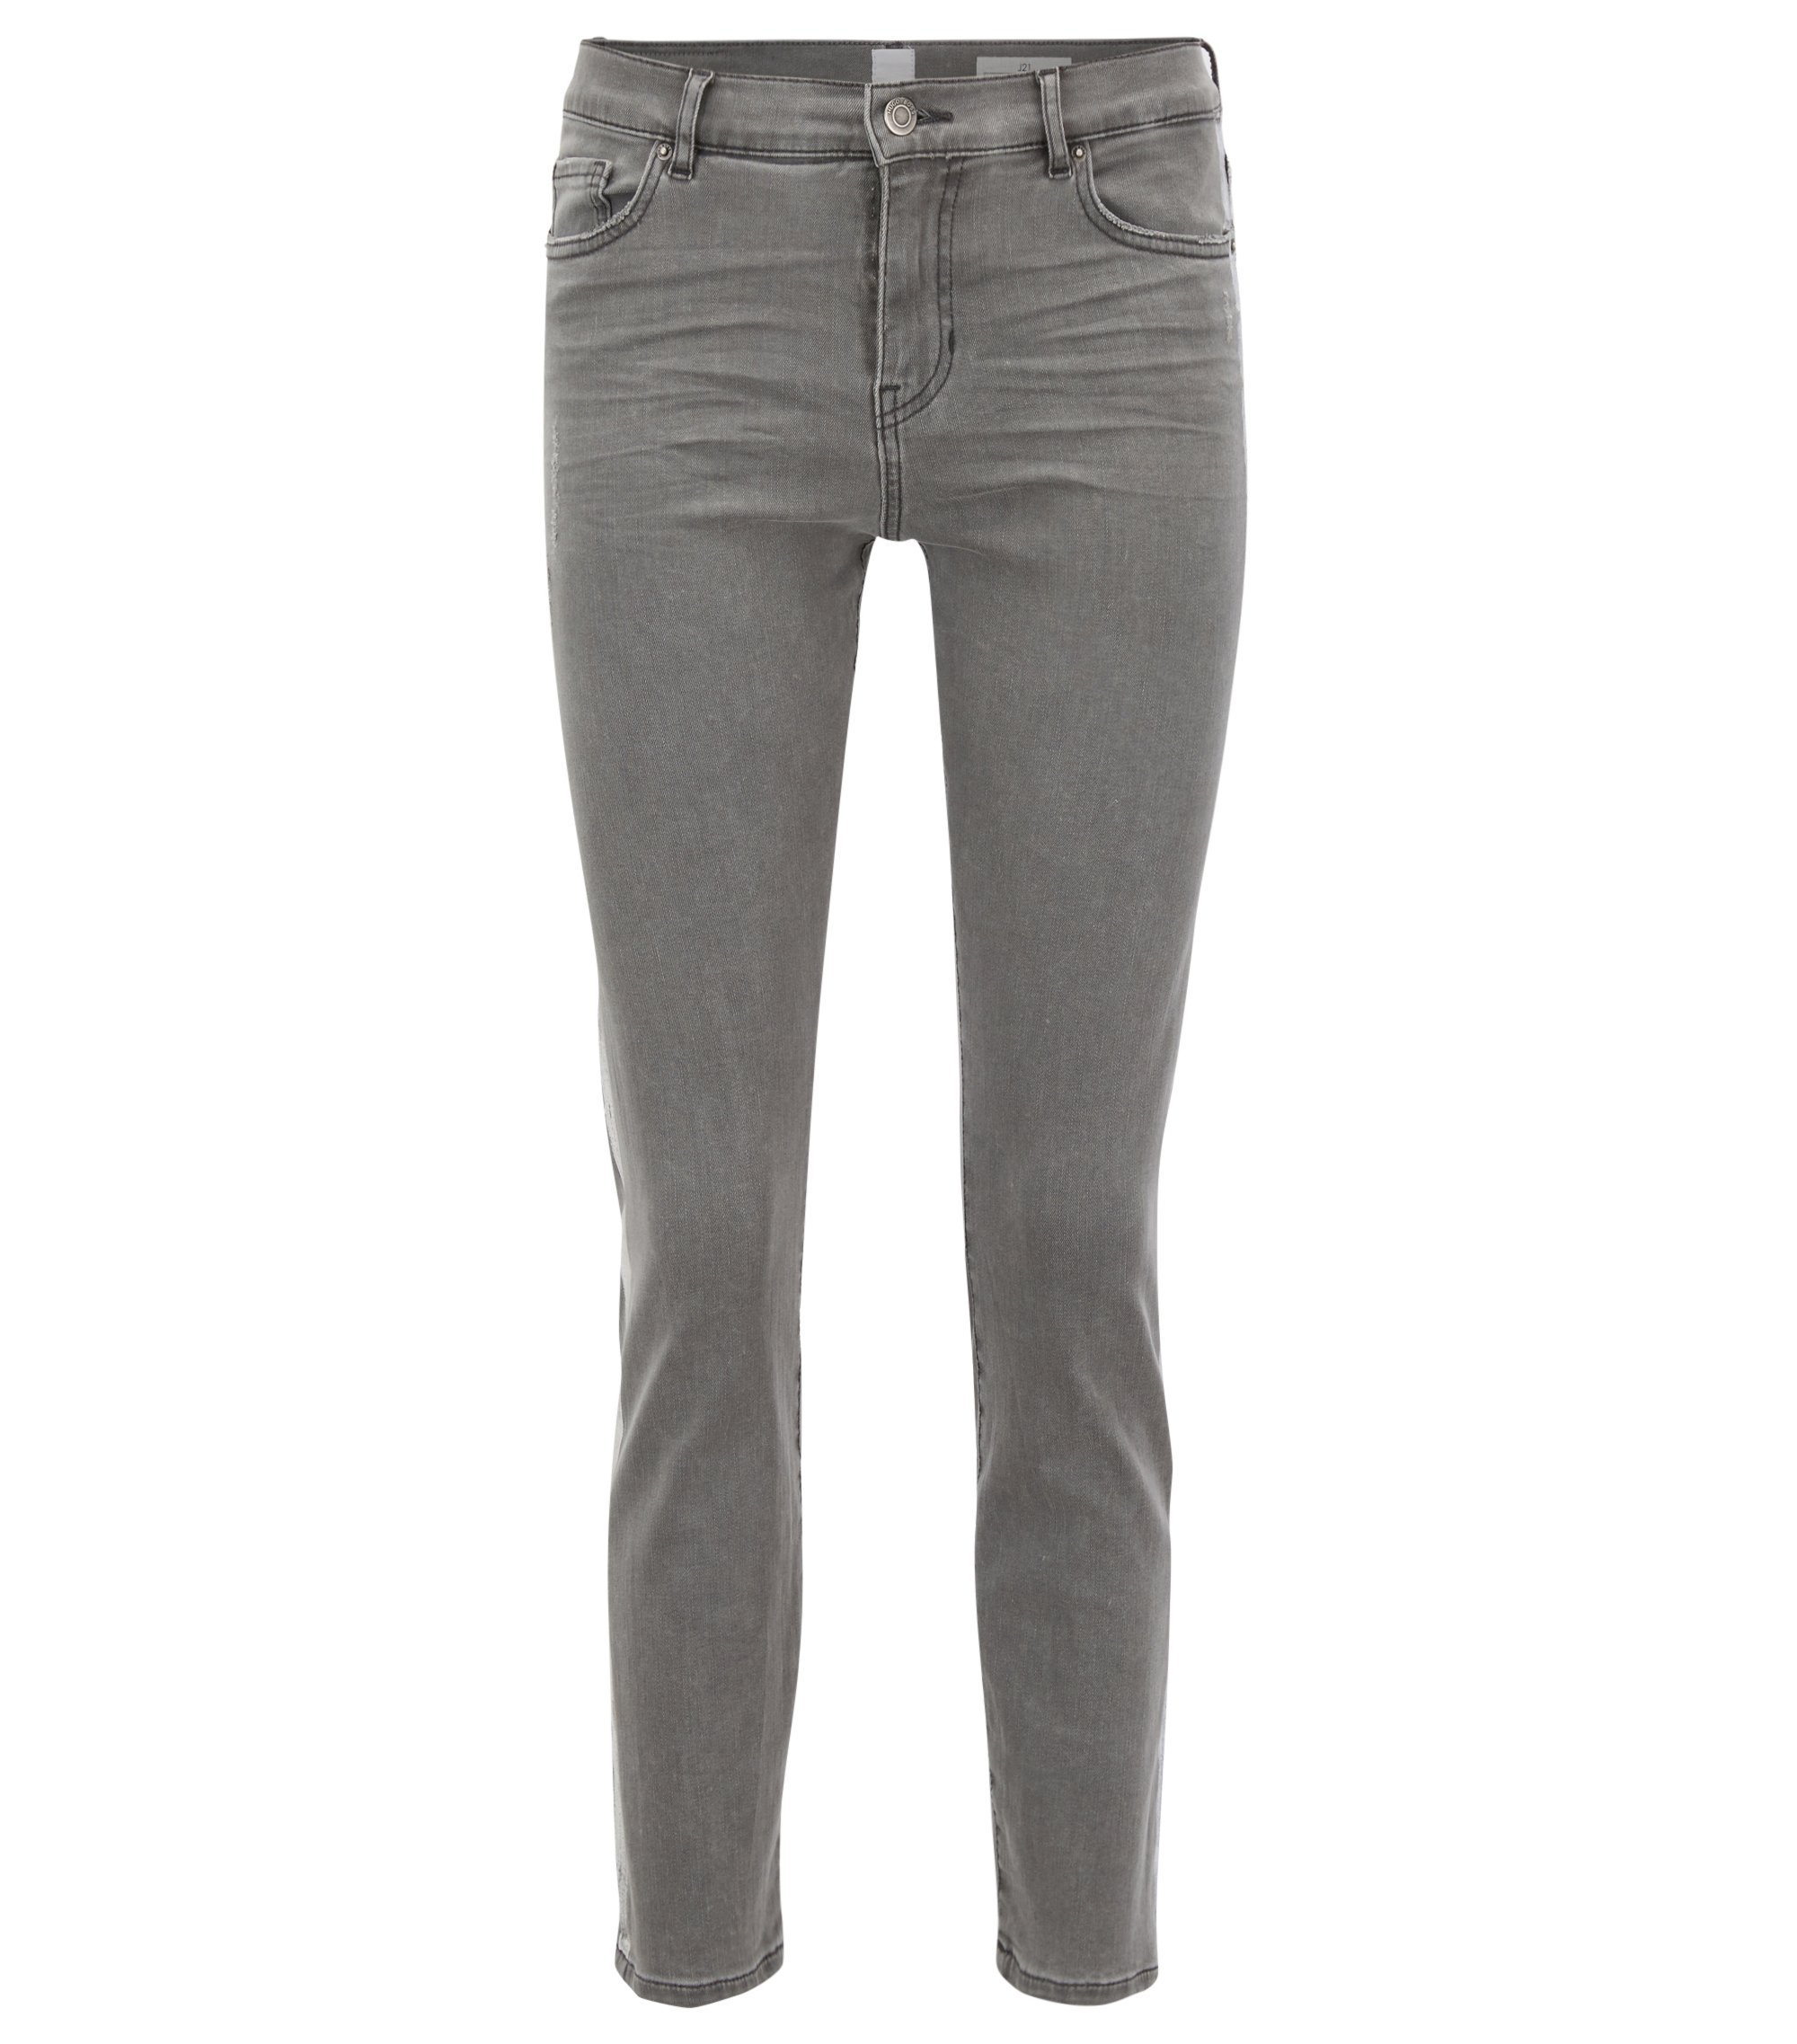 Slim-Fit Jeans aus Power-Stretch-Denim mit silberfarbenem Folien-Print, Grau